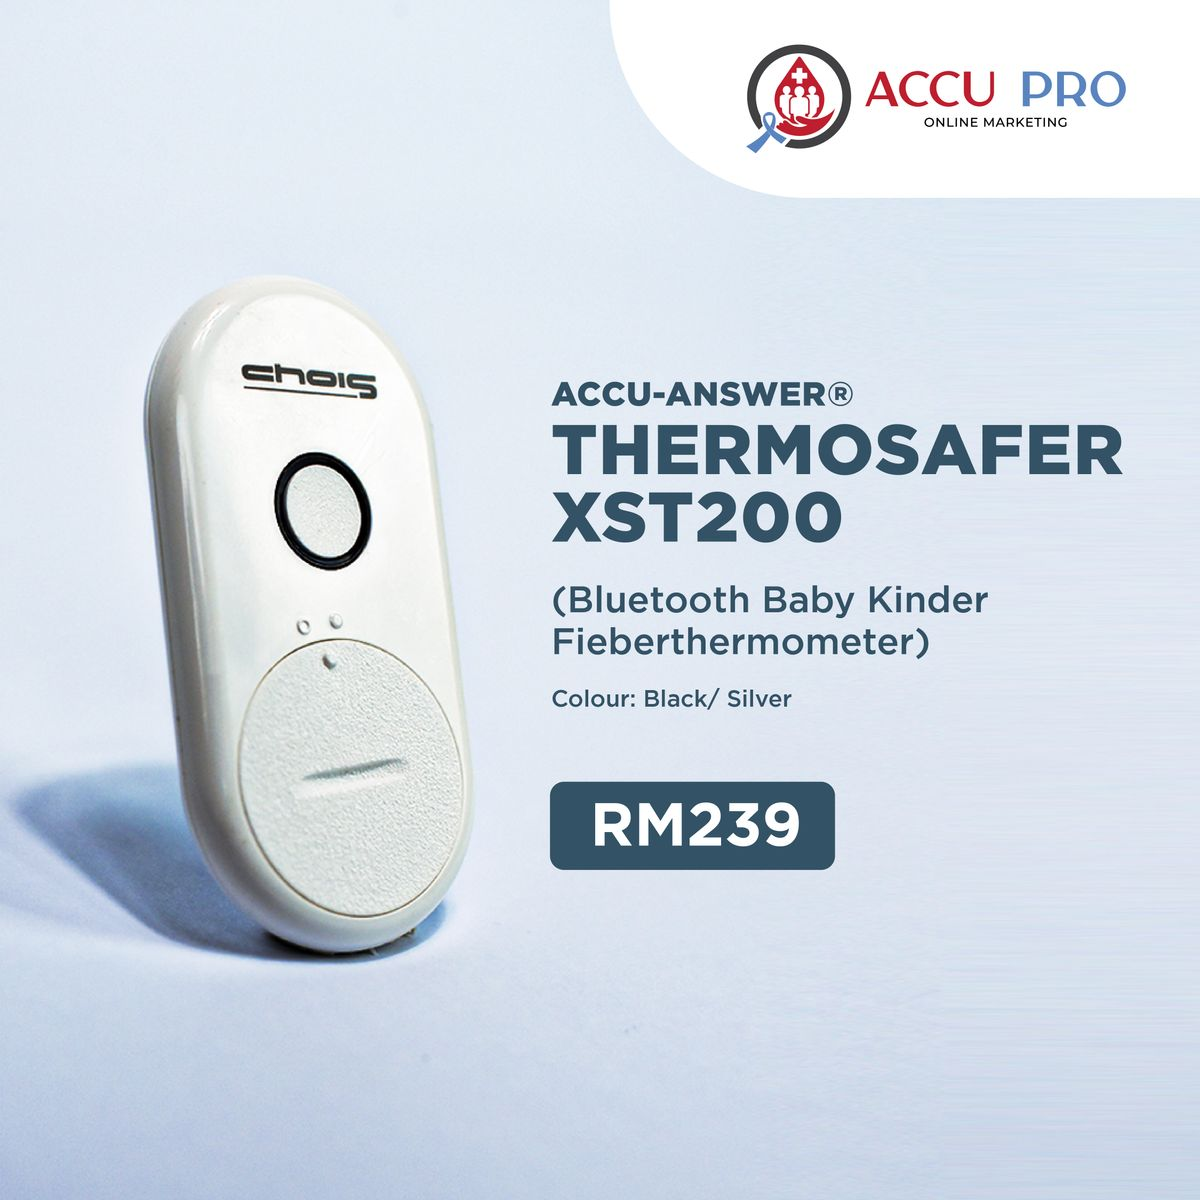 Accu-Answer® Thermosafer XST200